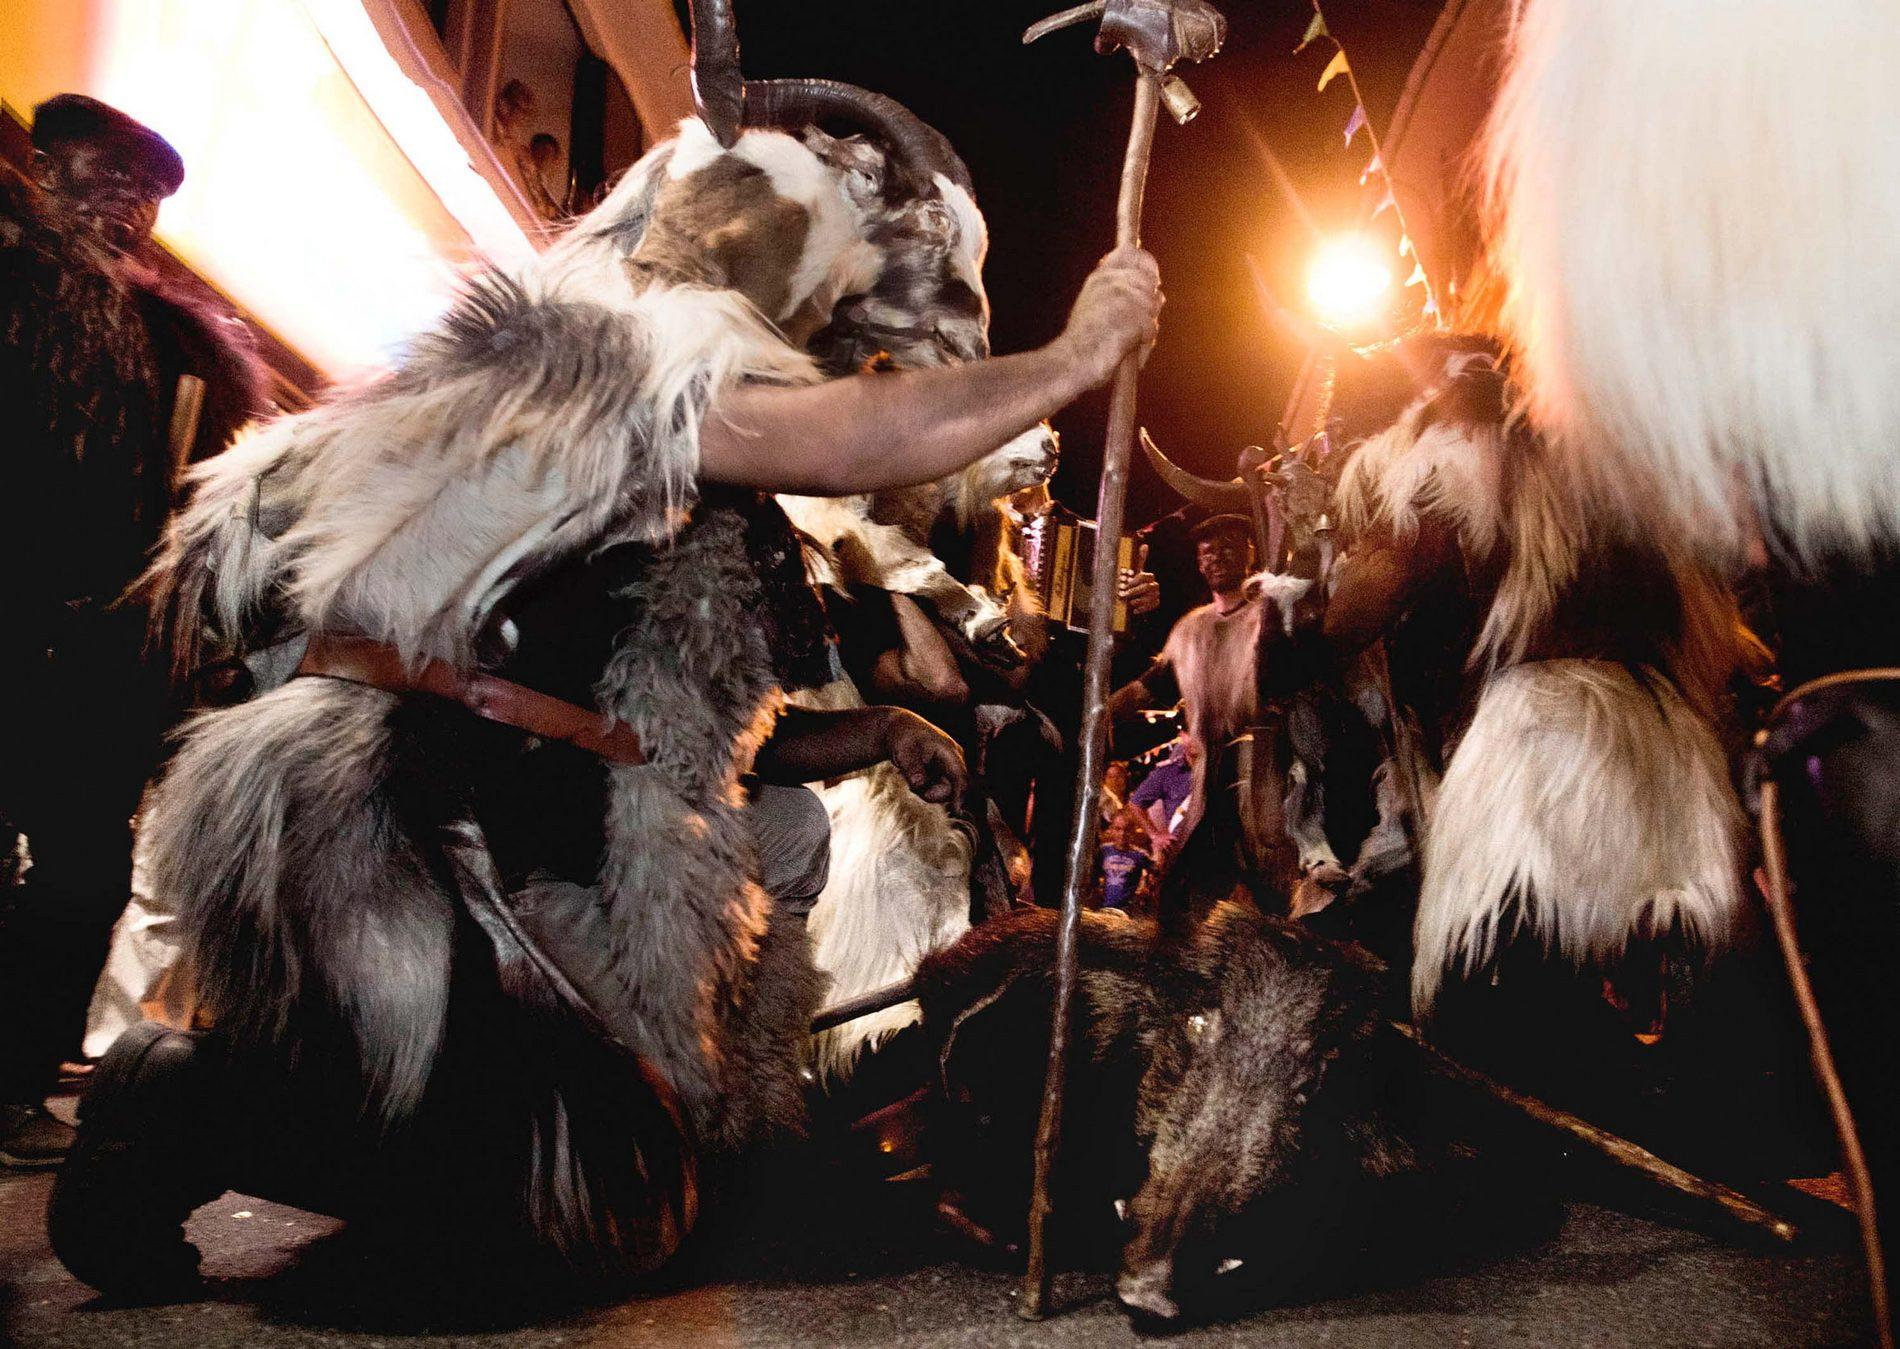 The mysterious beauty of Carnival in Sardinia